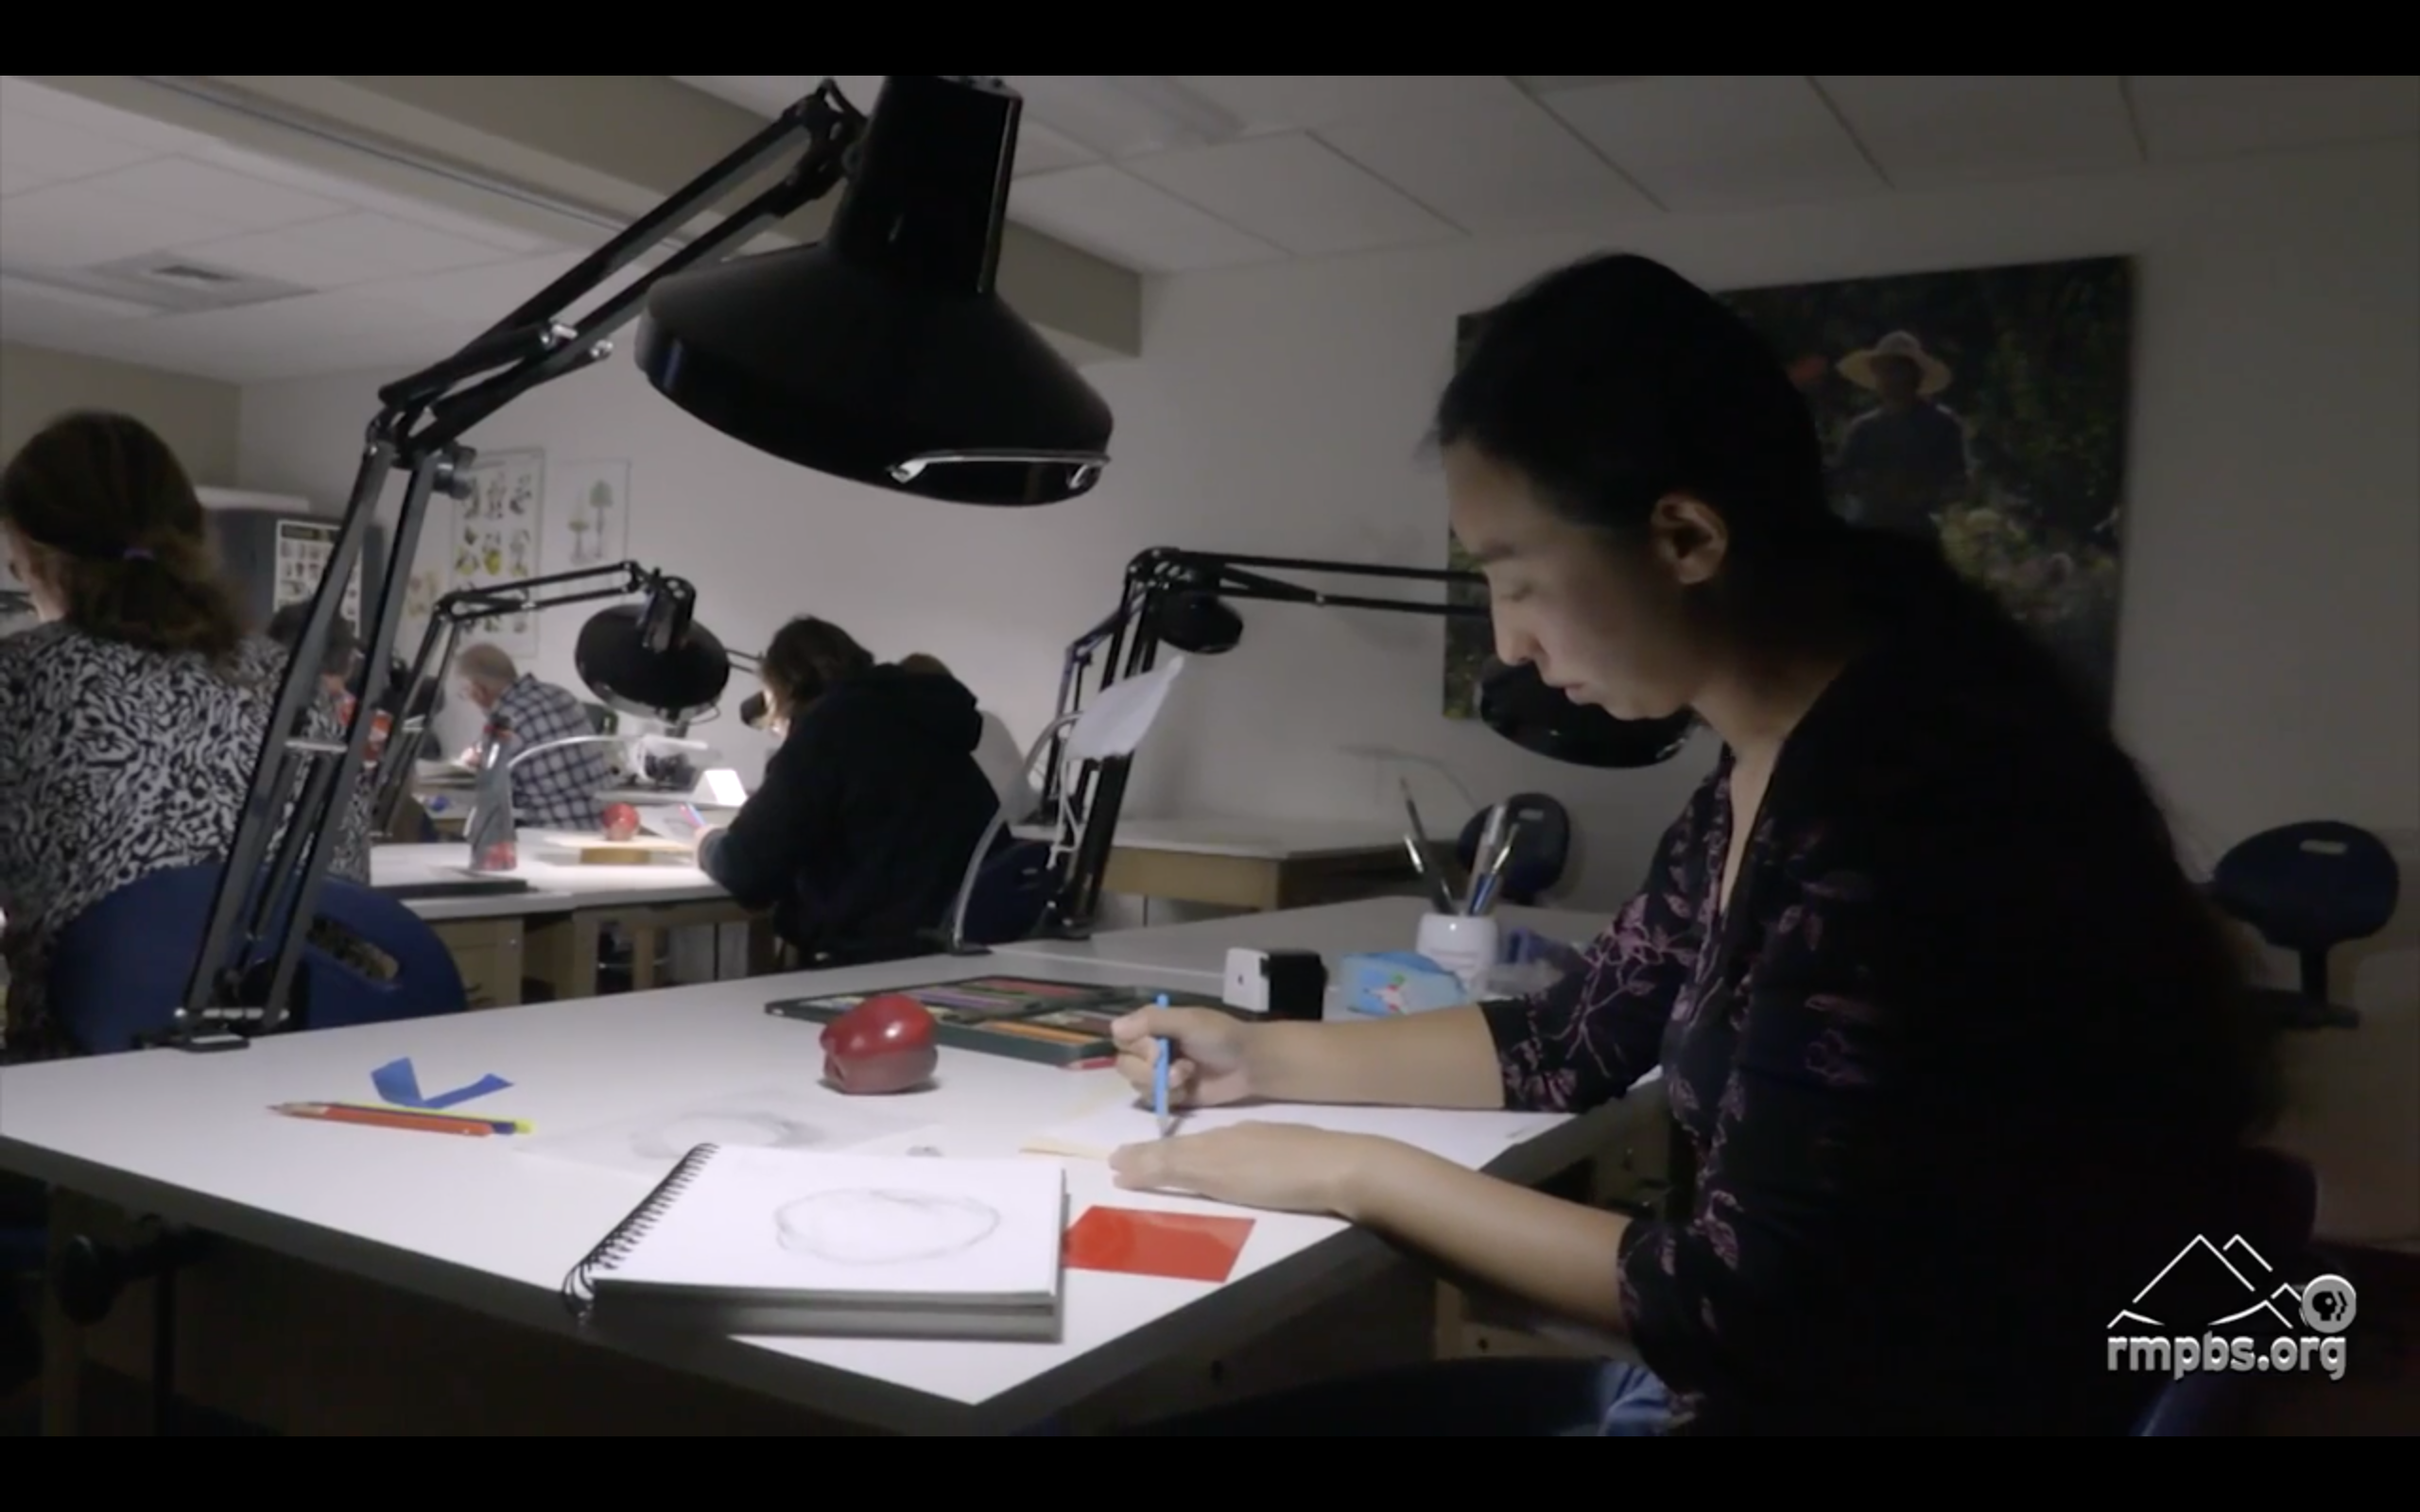 Ikumi Kayama, artist in residence at the School of Botanical Art and Illustration